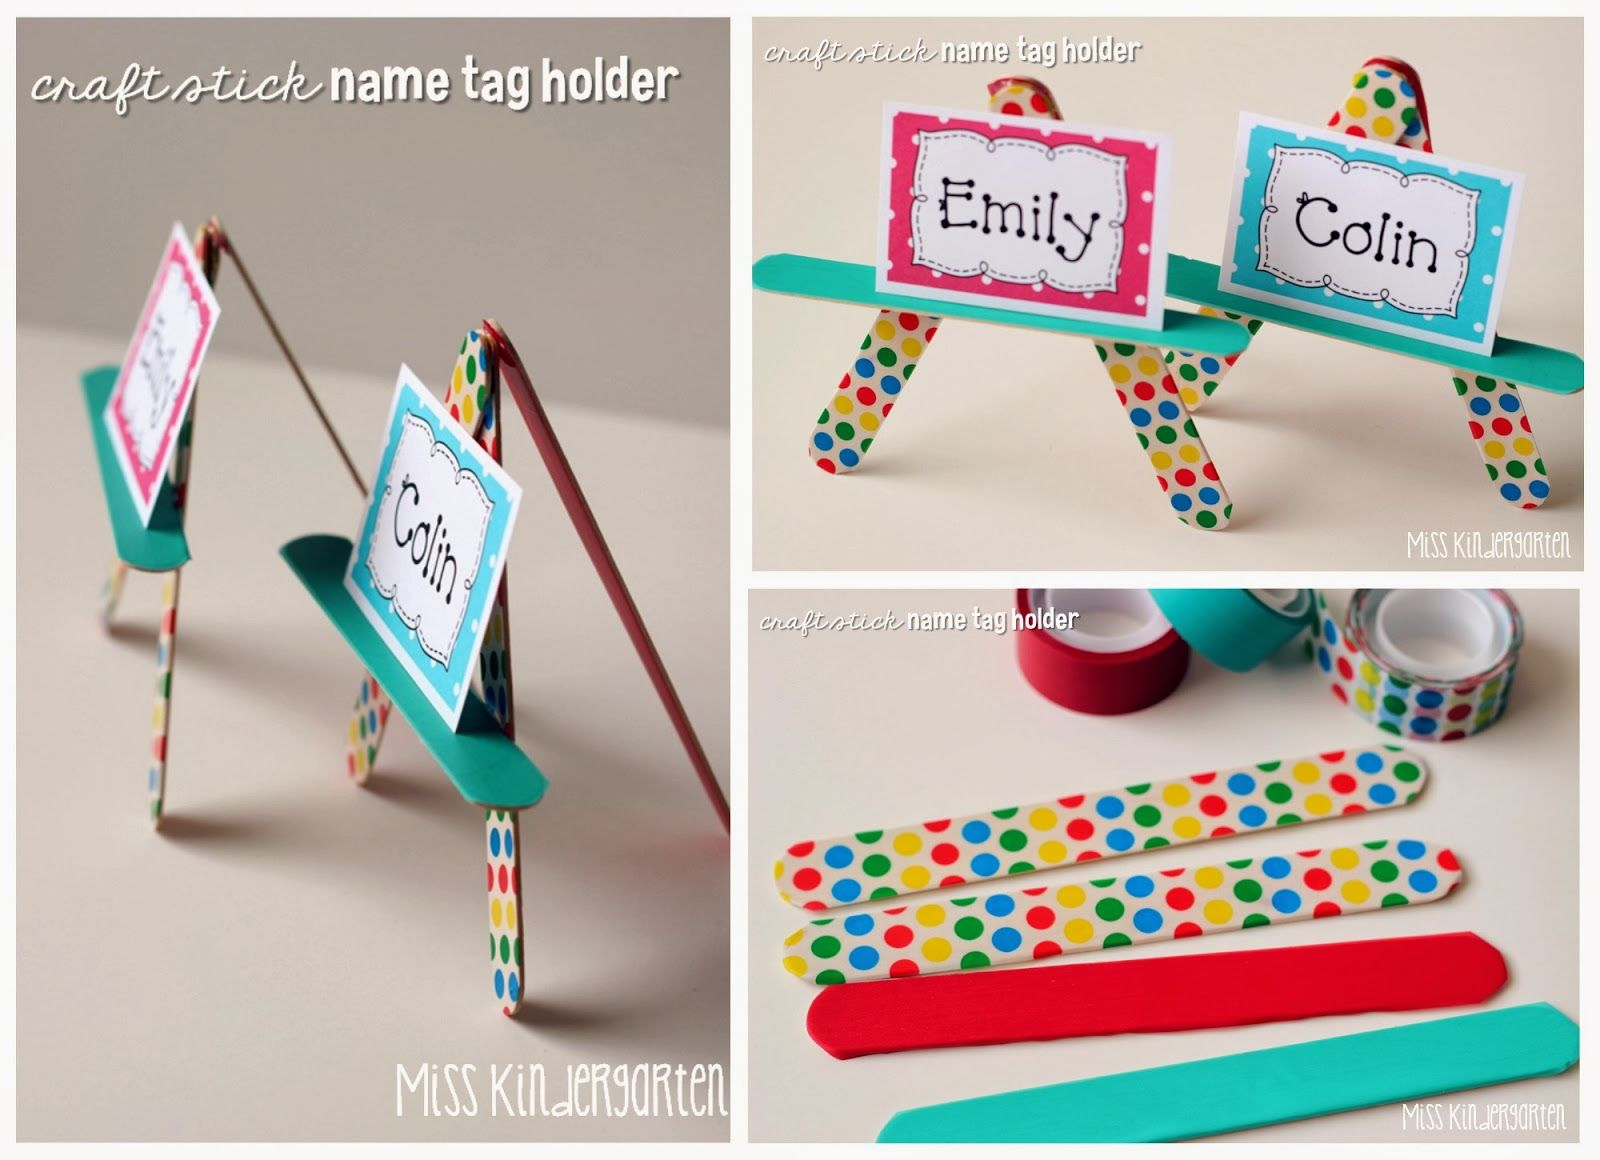 Great Name Tag Holders Made Of Popsicle Sticks And Decorative Tape.